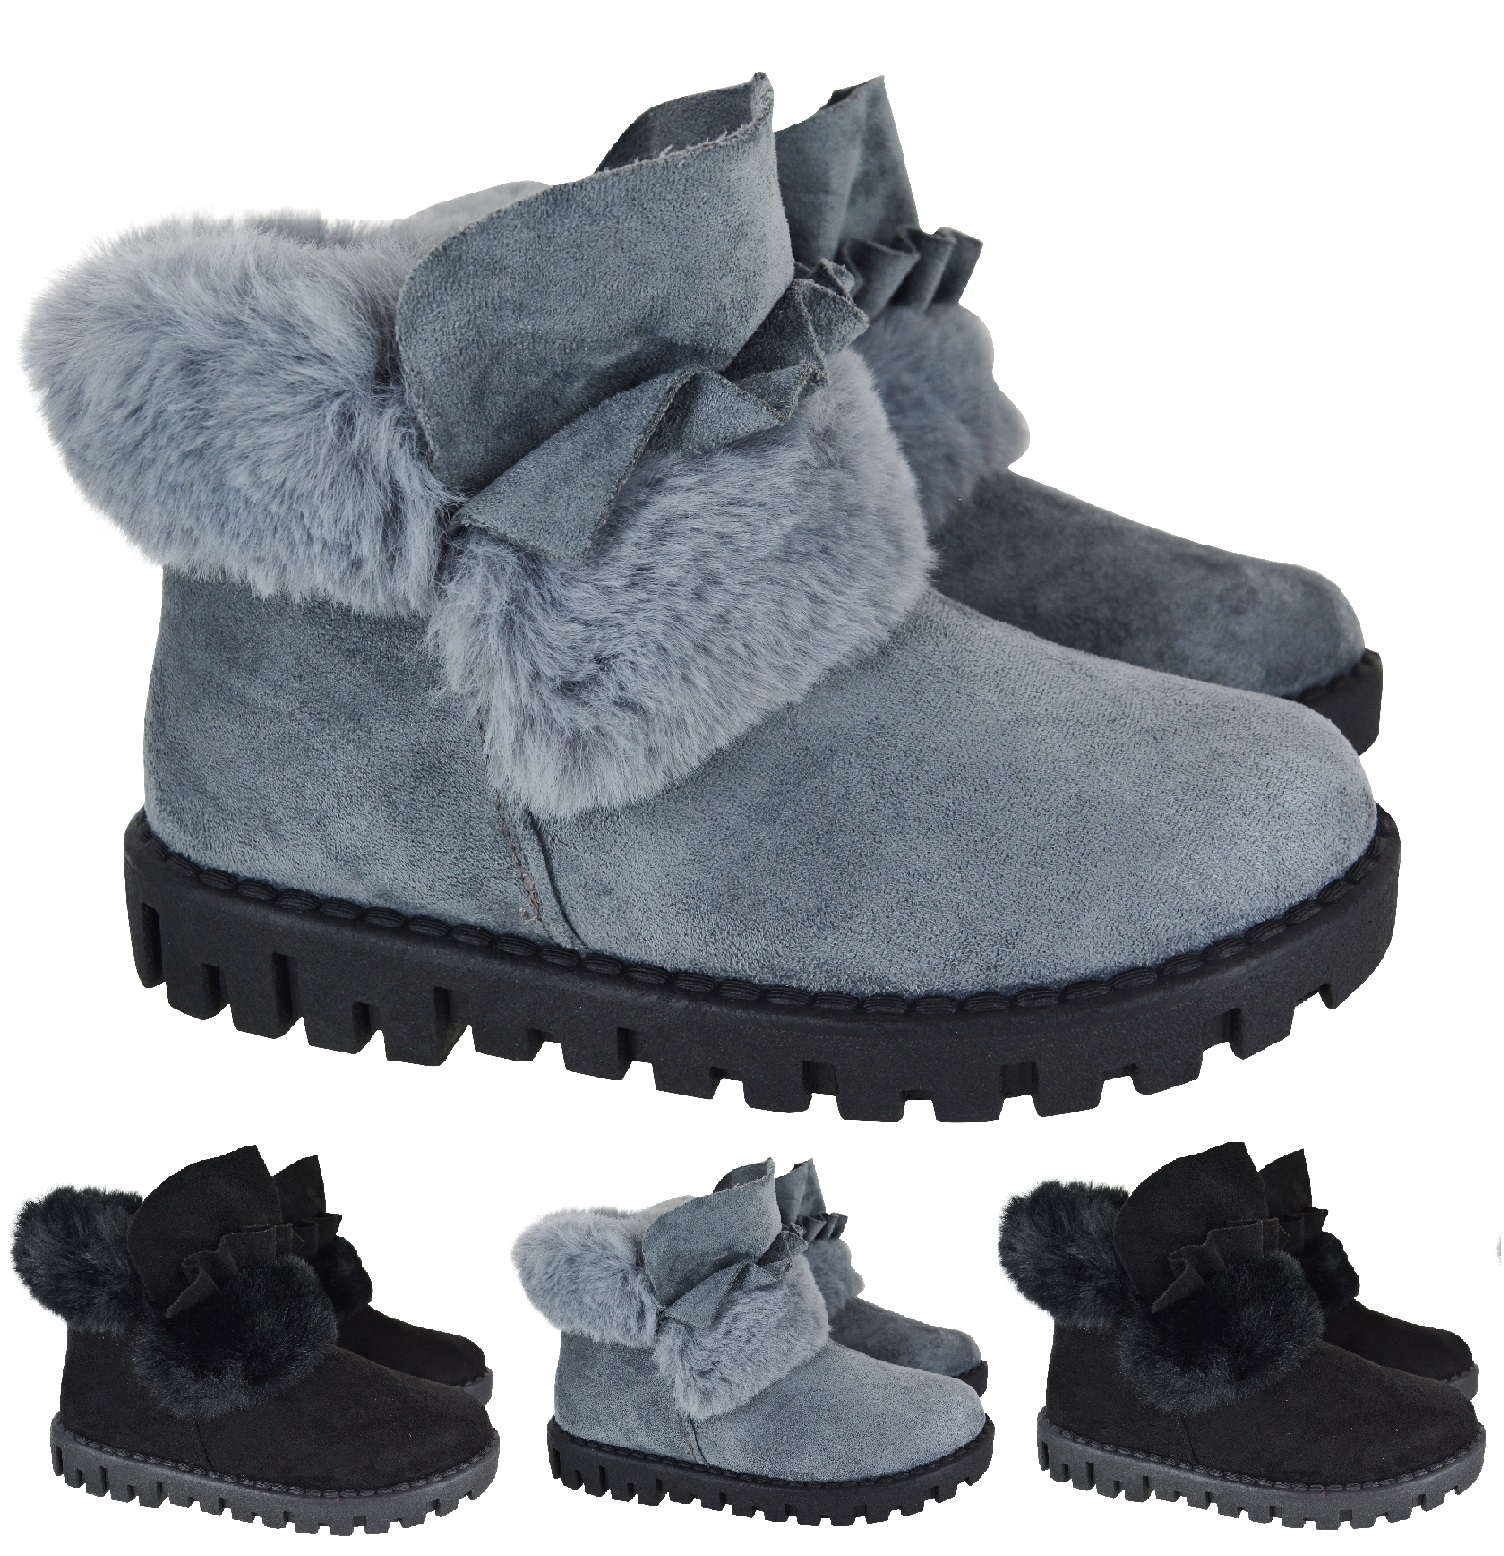 LADIES WOMENS WARM WINTER GRIP SOLE SNOW ANKLE FUR LINED FLAT SHOES BOOTS SIZE